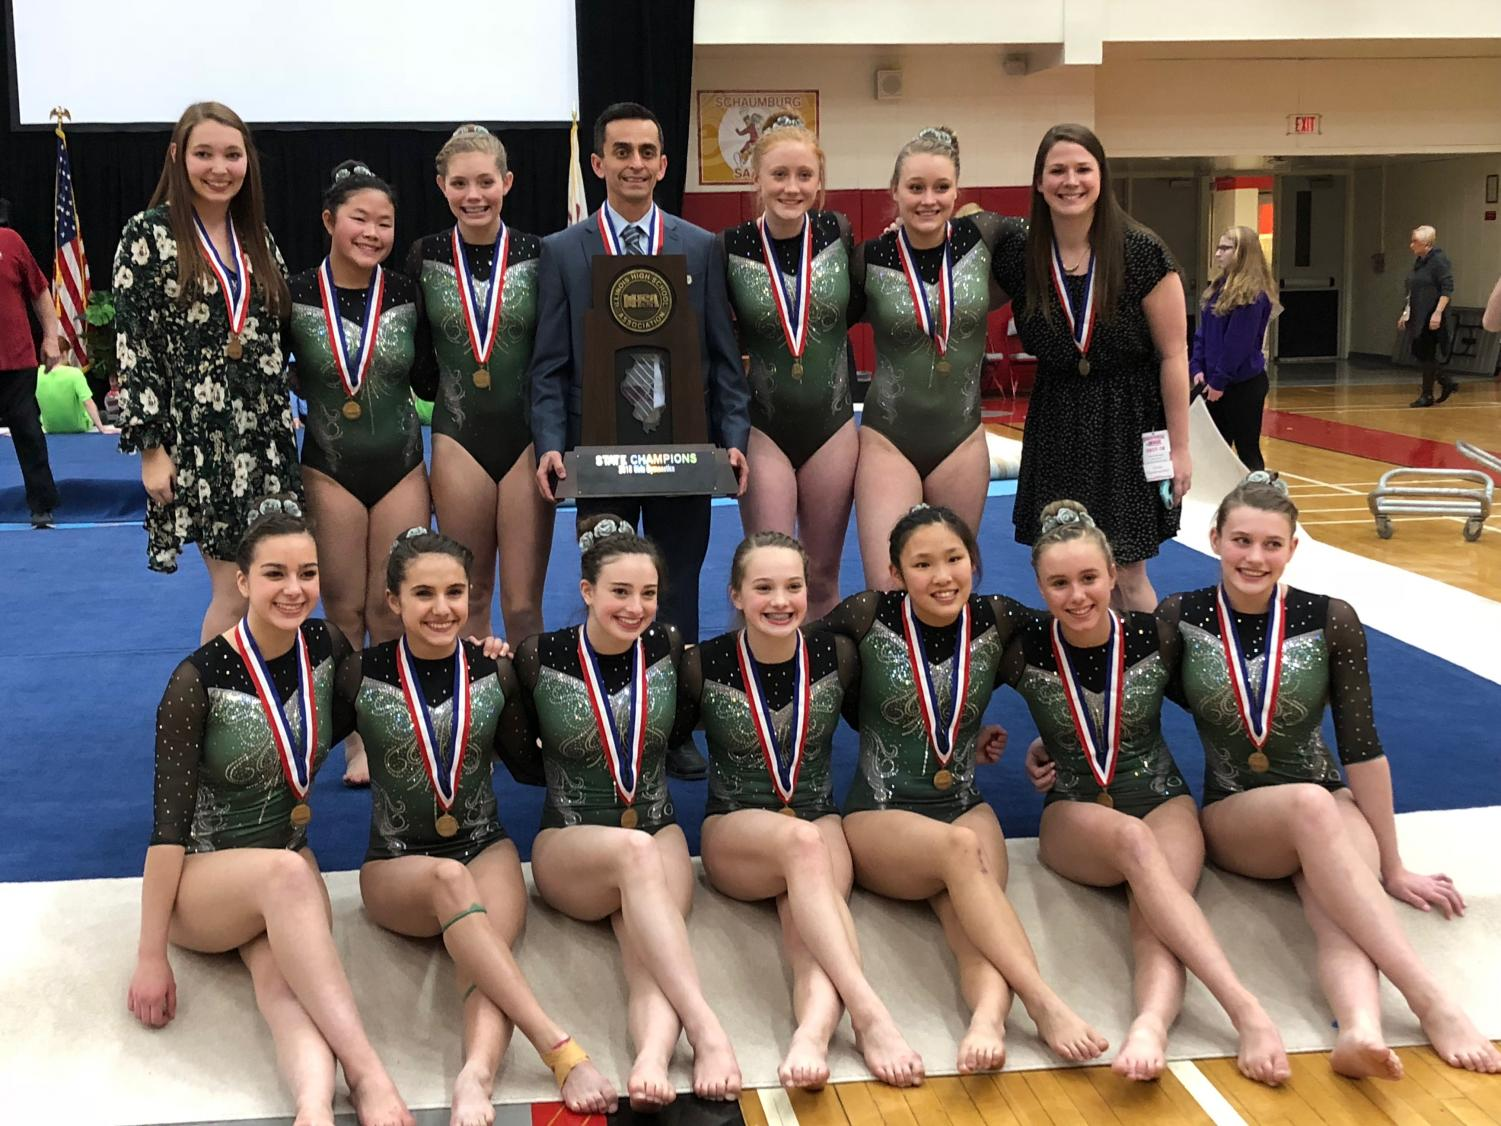 The 2017-2018 Girls' Gymnastics team holds their HUGE trophy!